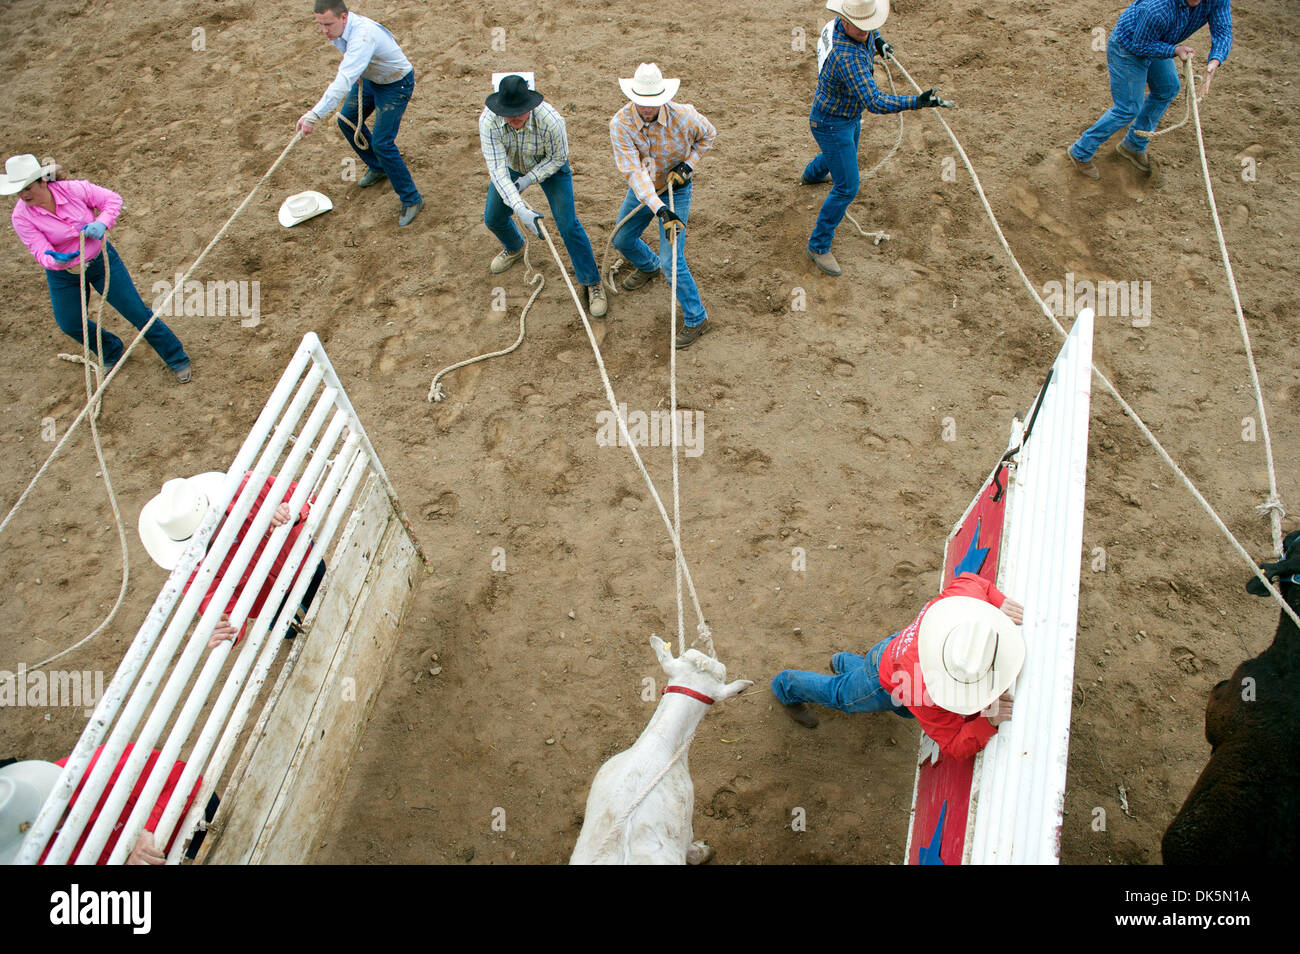 May 8, 2011 - Sonora, California, U.S - Contestants compete in the Calf Scramble at the Mother Lode Round-Up in Sonora, CA. (Credit Image: © Matt Cohen/Southcreek Global/ZUMAPRESS.com) - Stock Image